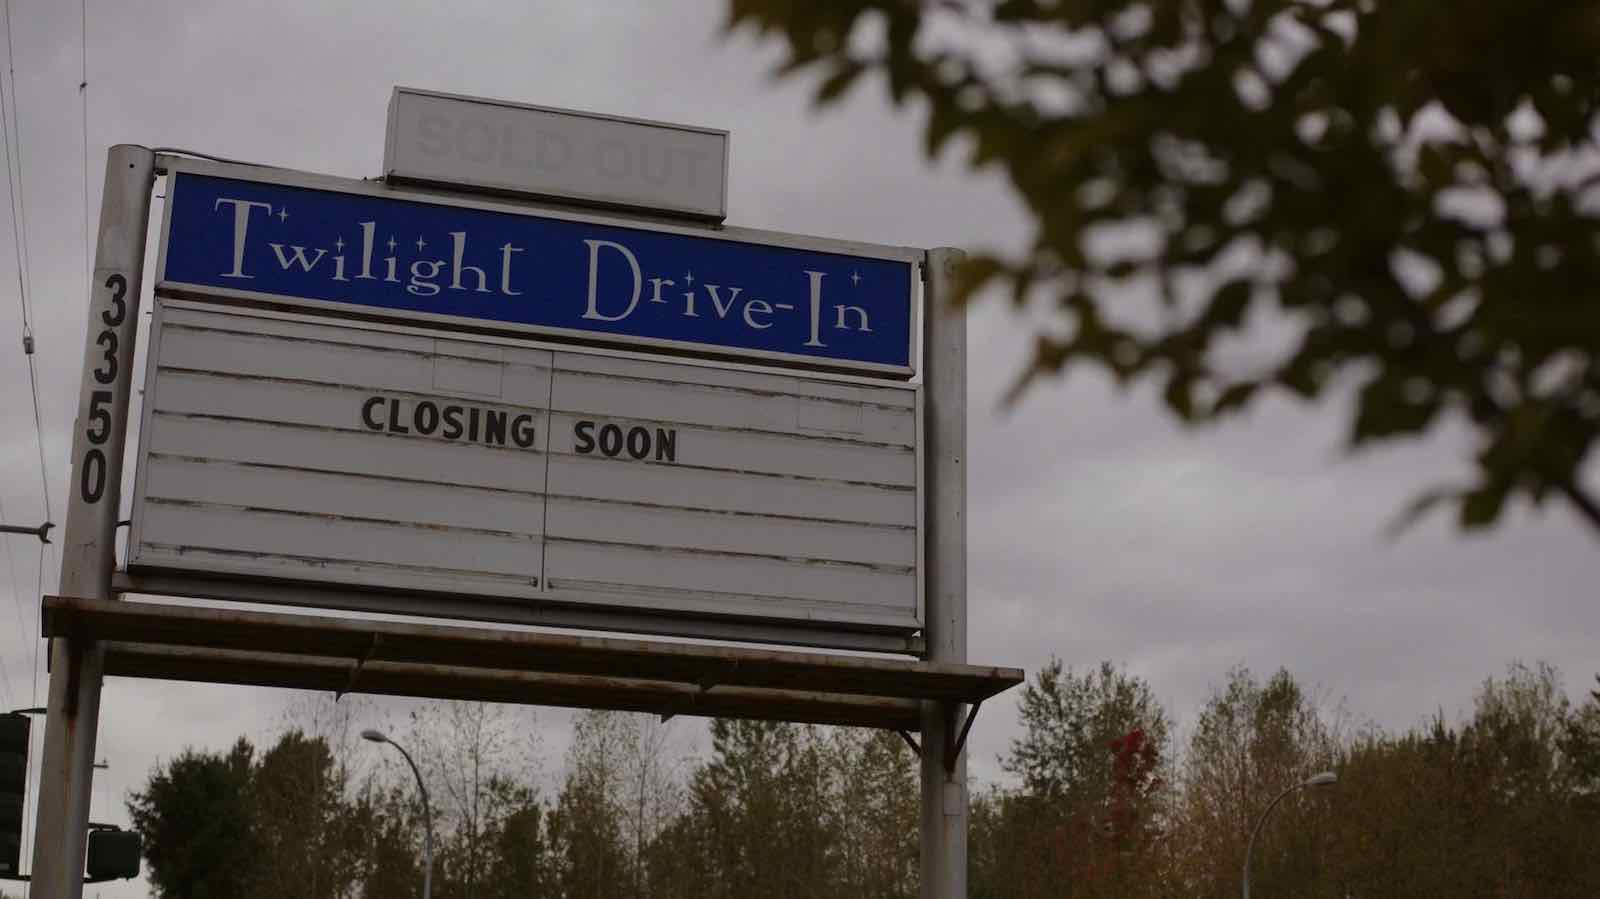 Image for What was the last movie to play at the drive-in theater before it closed?